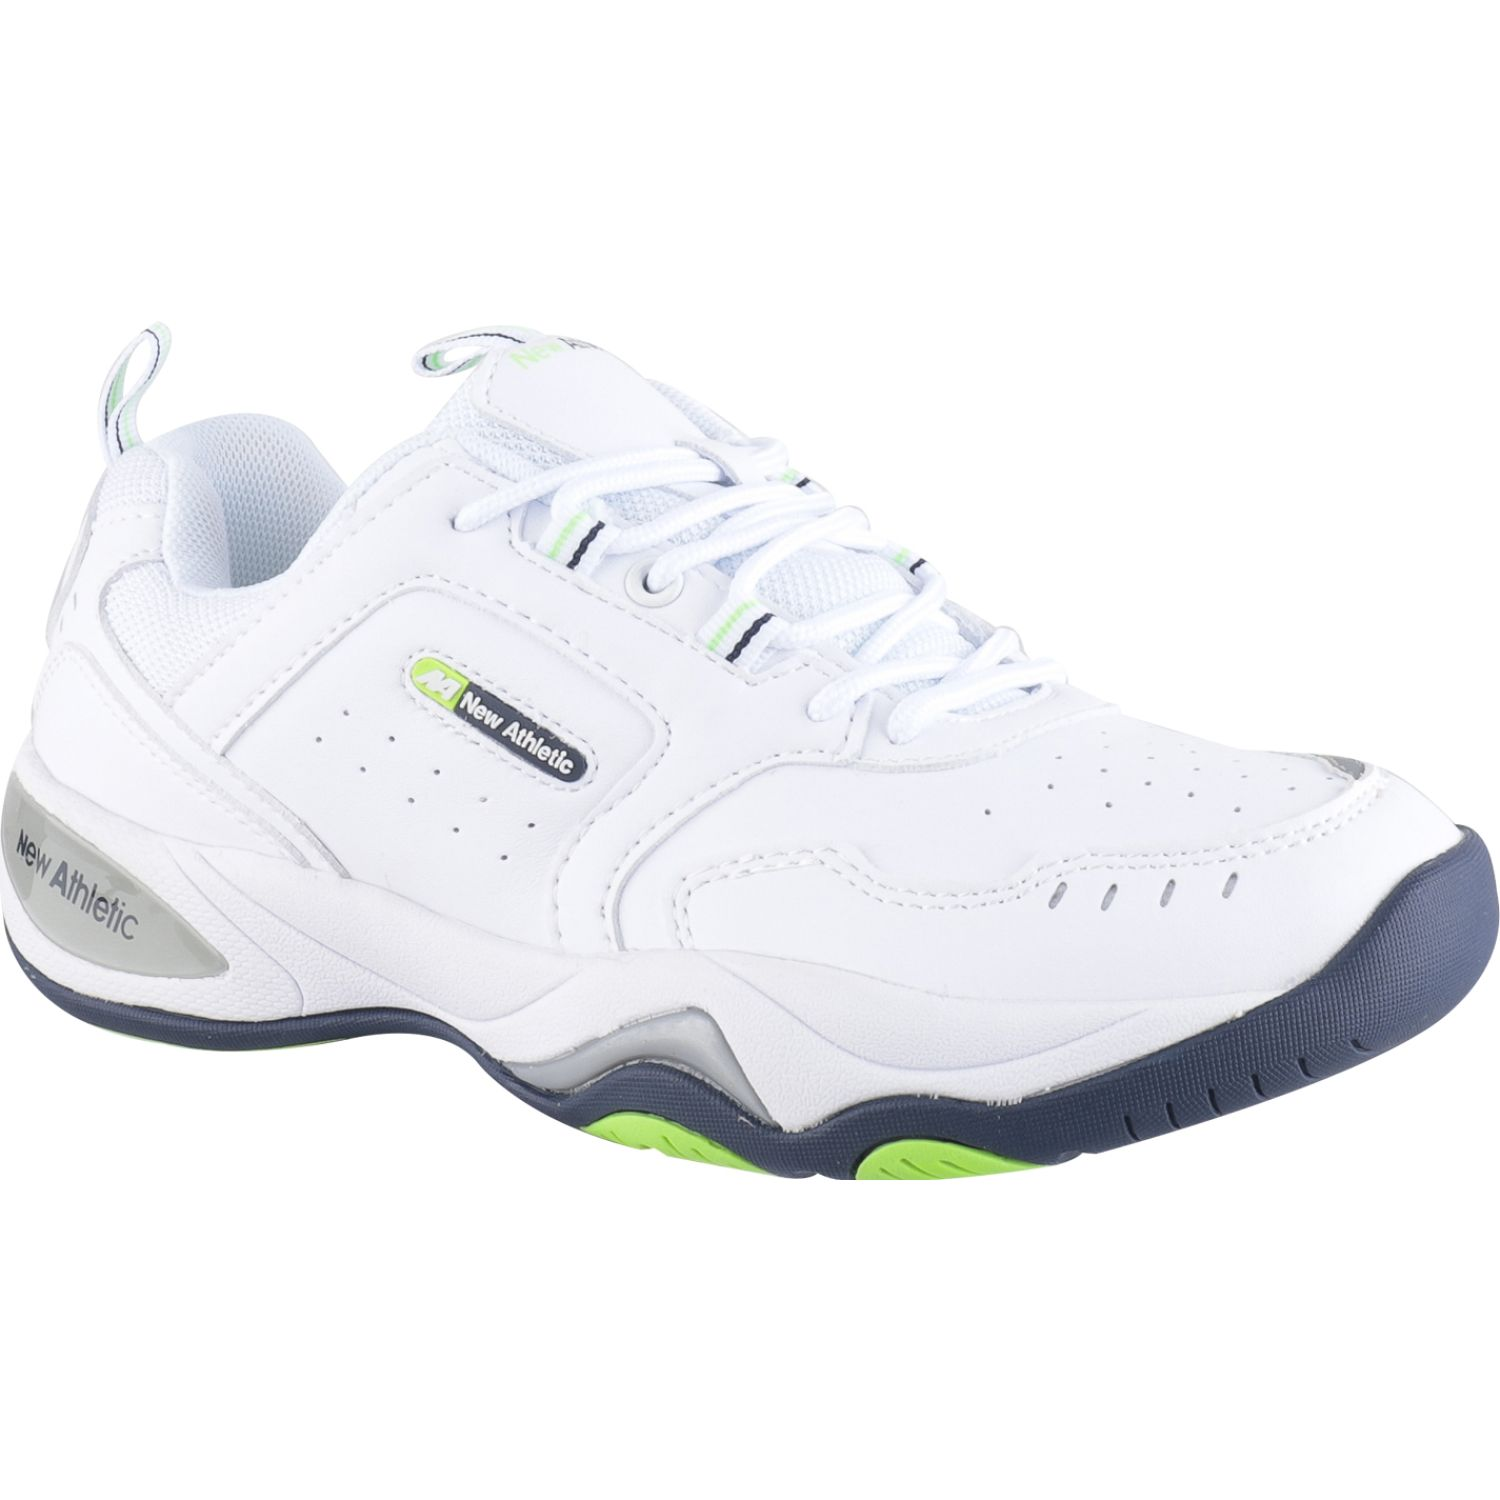 NEW ATHLETIC Row Blanco / verde Zapatillas de moda